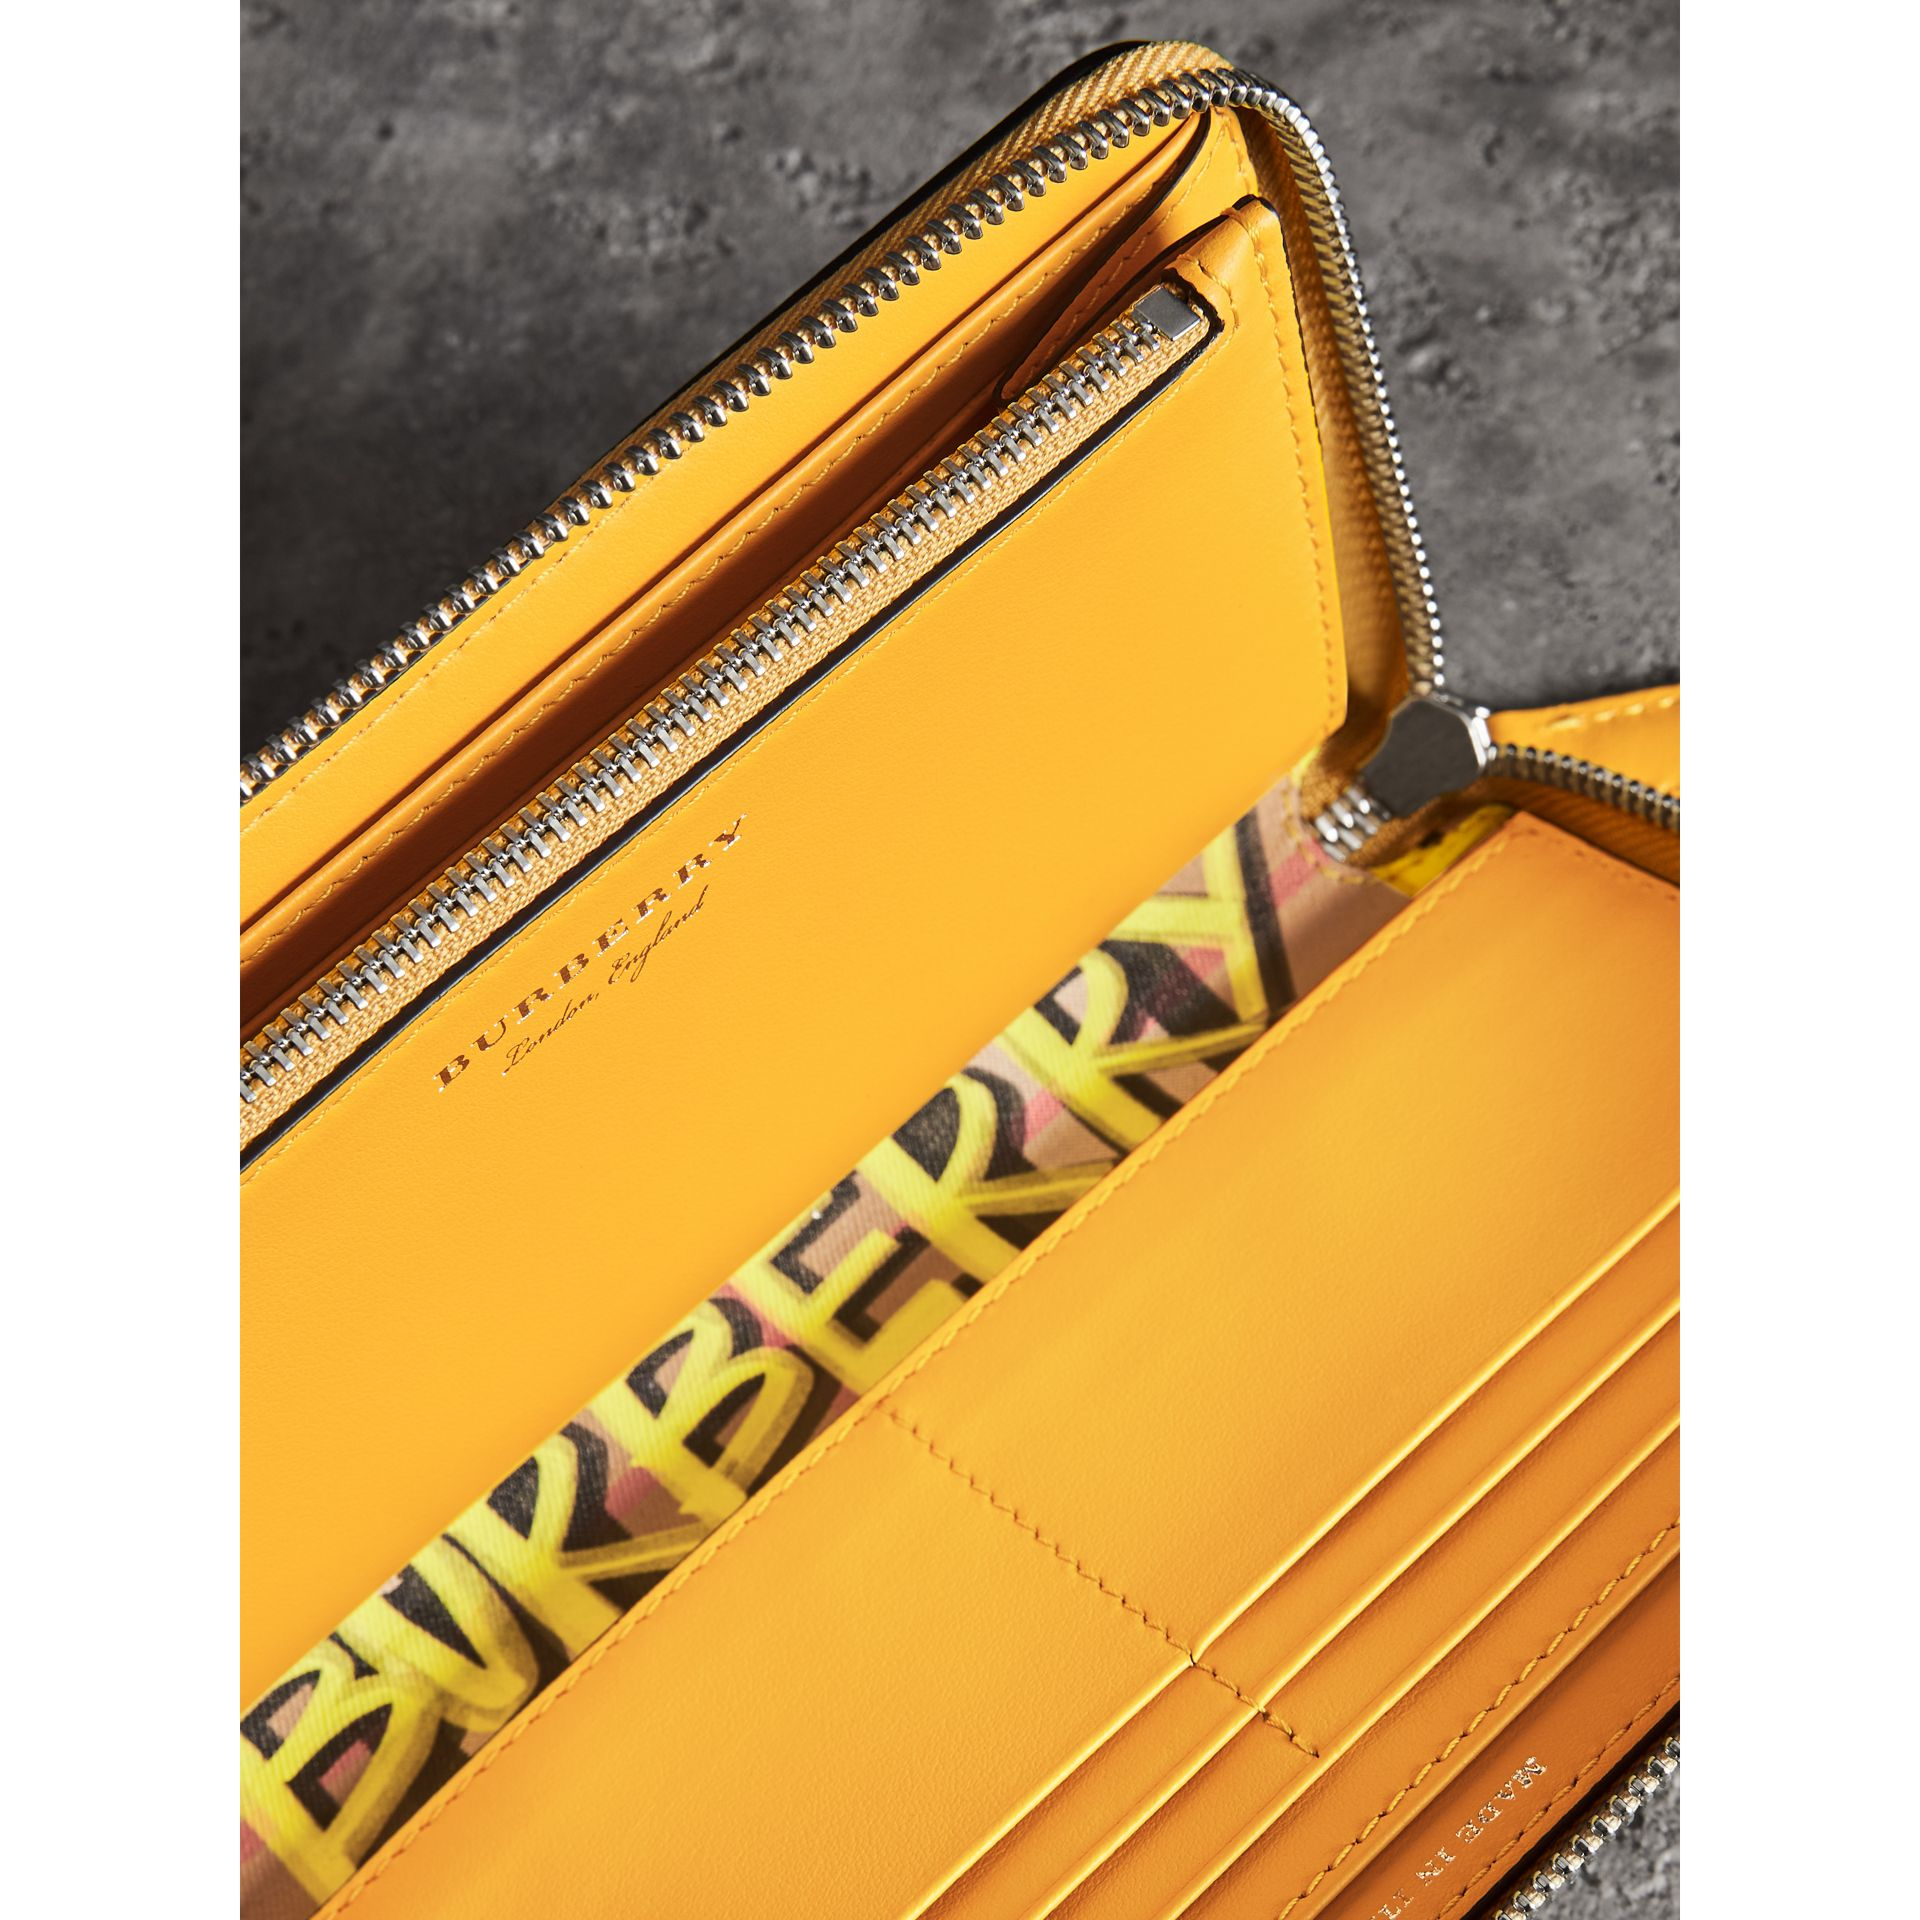 Graffiti Print Vintage Check Leather Ziparound Wallet in Yellow - Women | Burberry Canada - gallery image 3